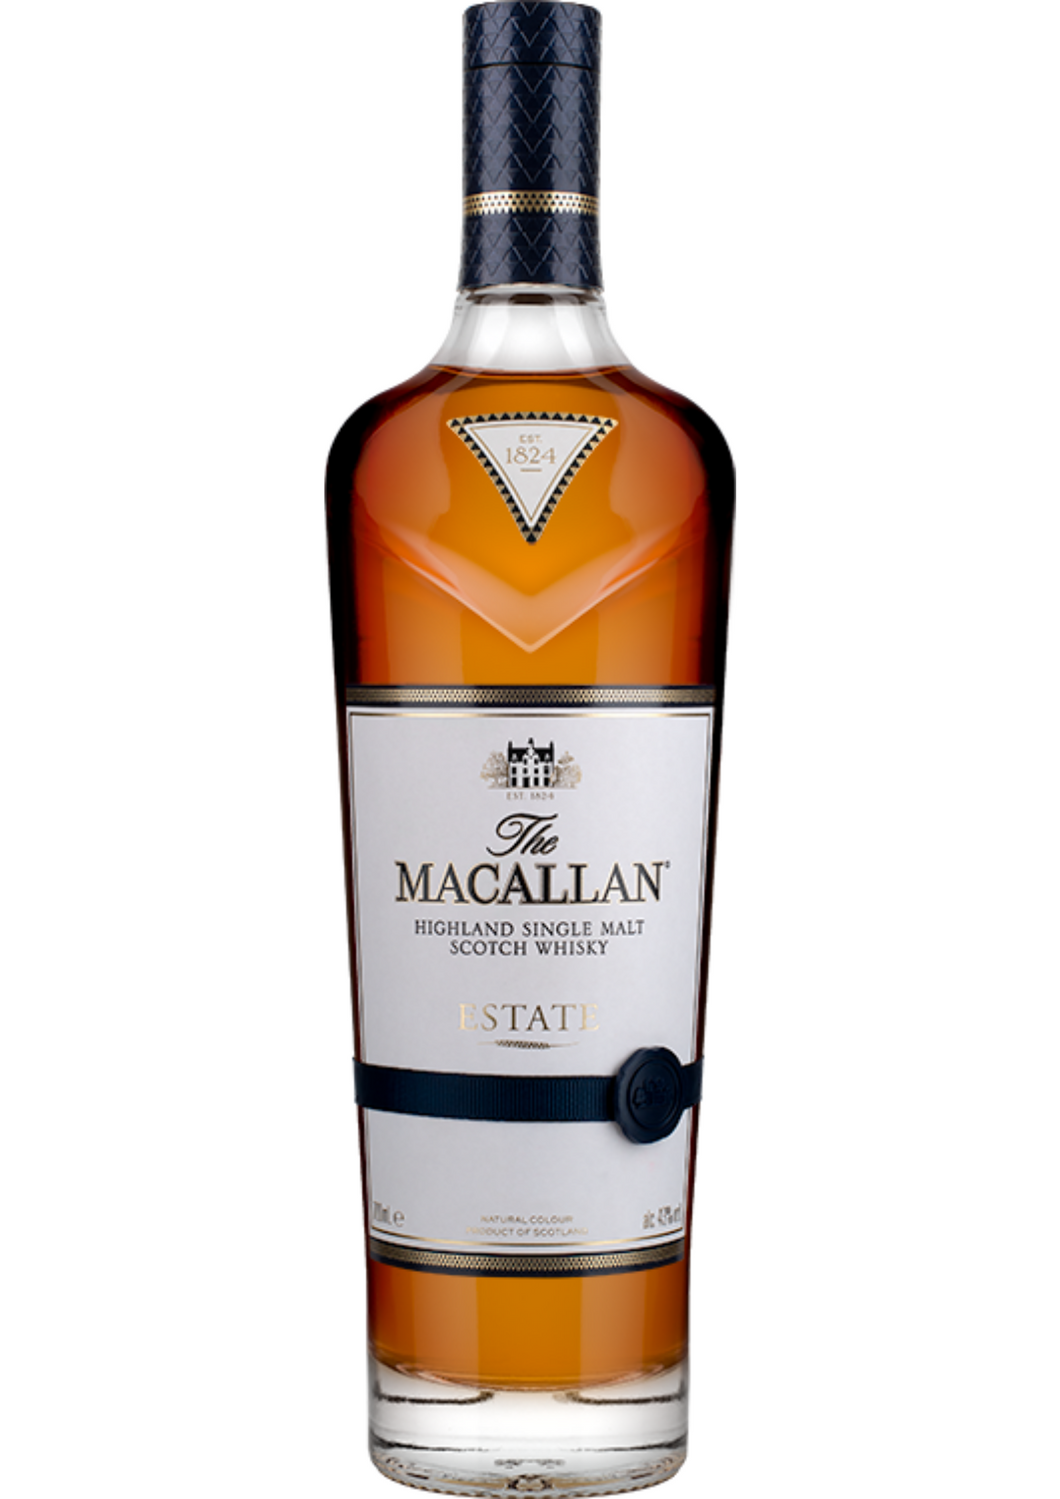 The Macallan Estate - Vine0nline